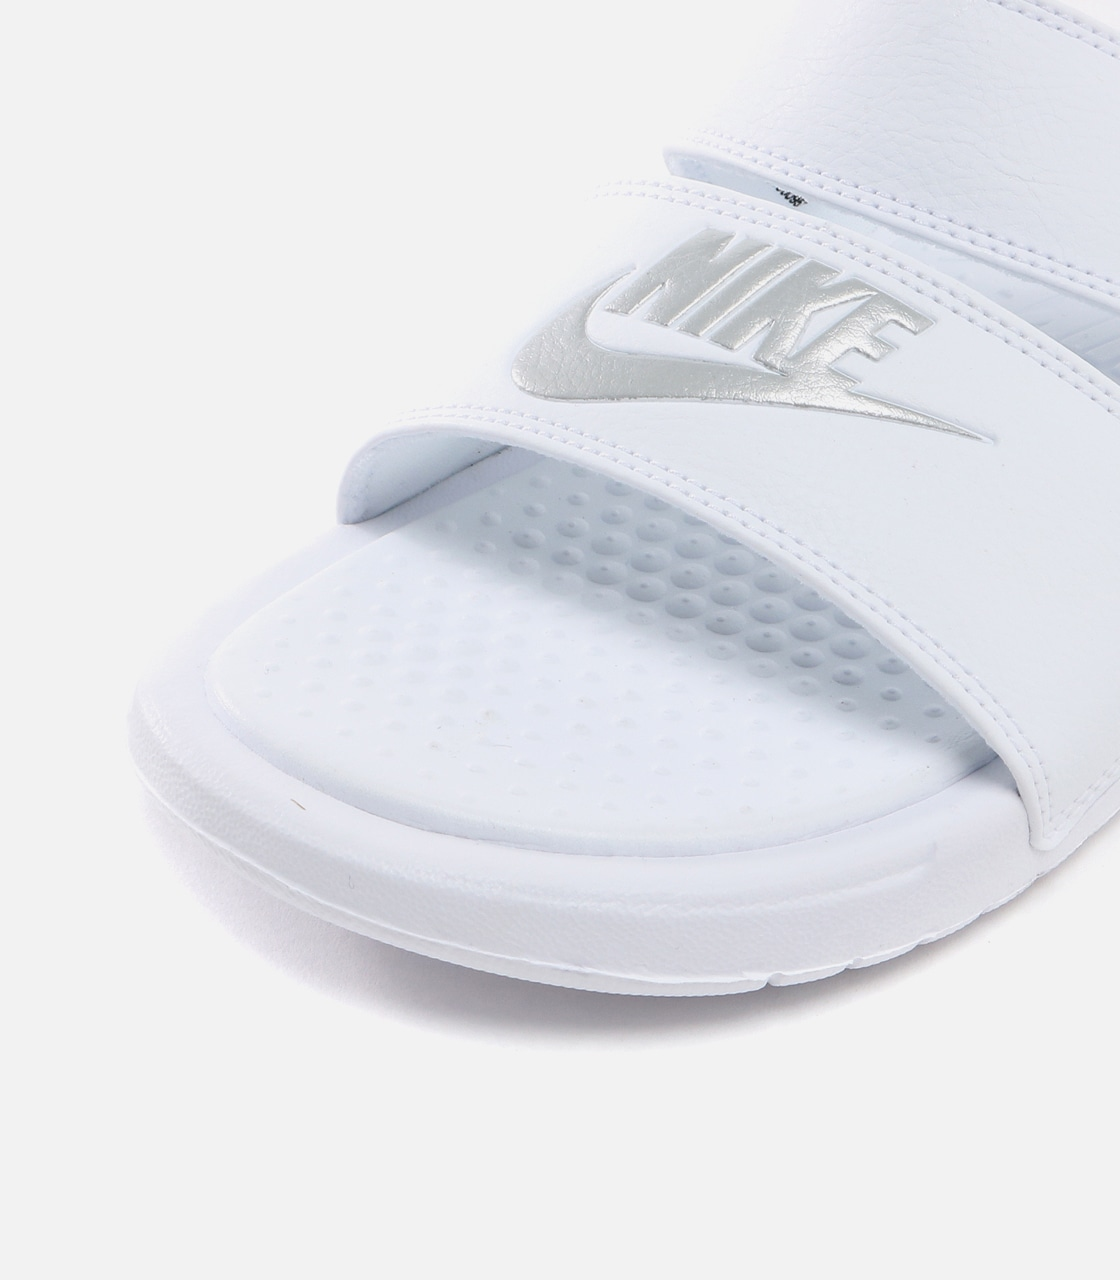 【AZUL BY MOUSSY】WIMNS NIKE BENASSI DUO ULTRA SLIDE 詳細画像 WHT 5